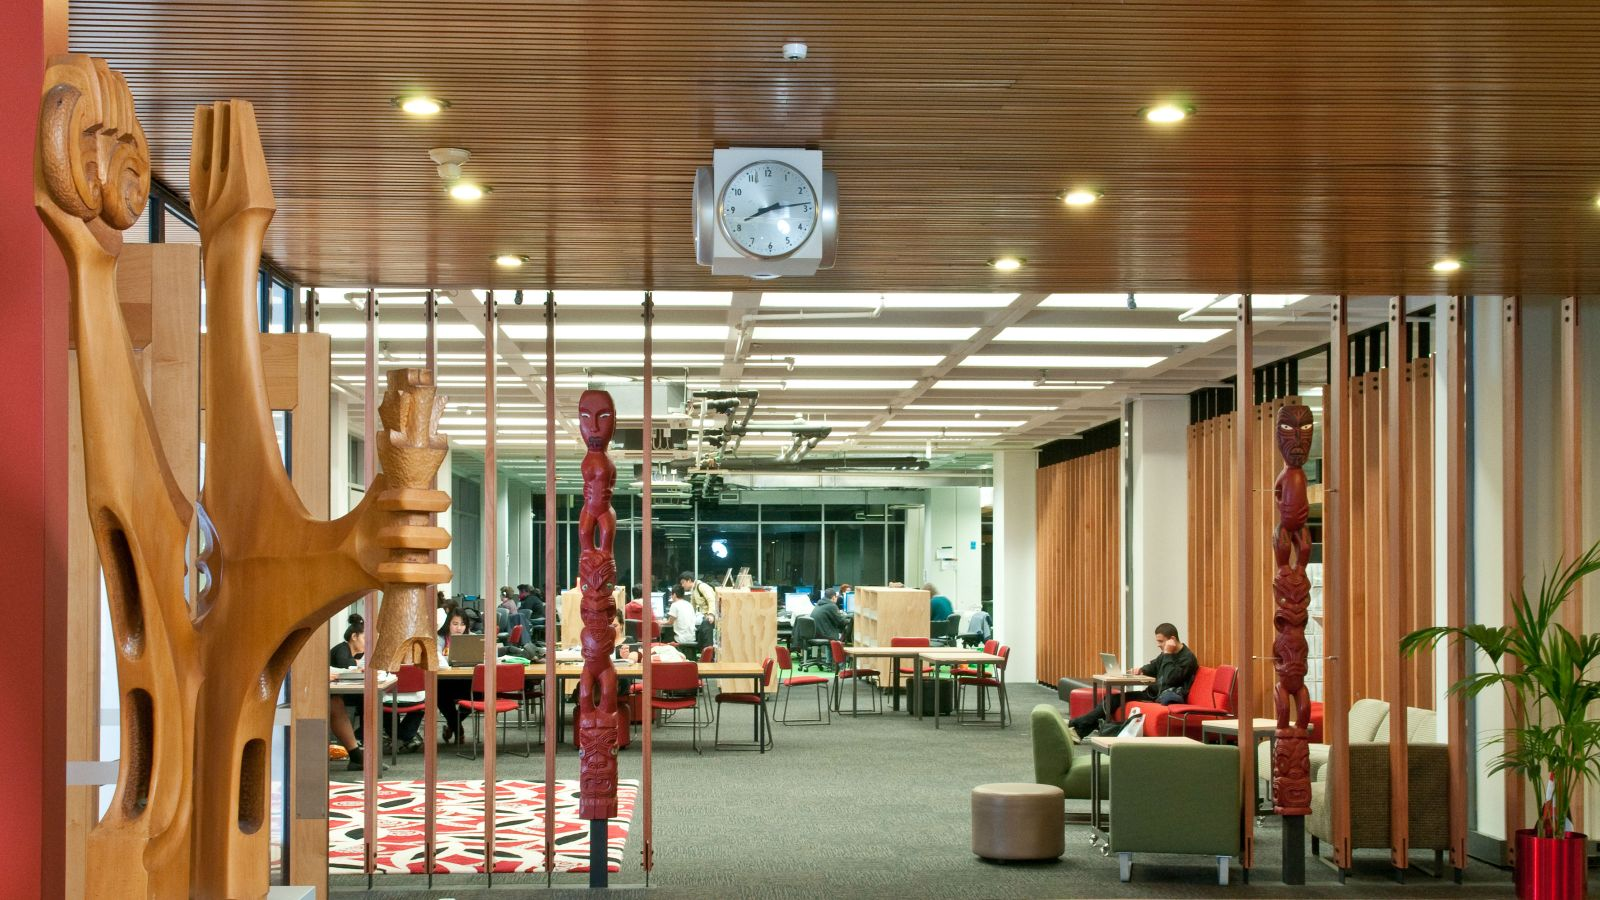 Internal shot of the Kelburn library